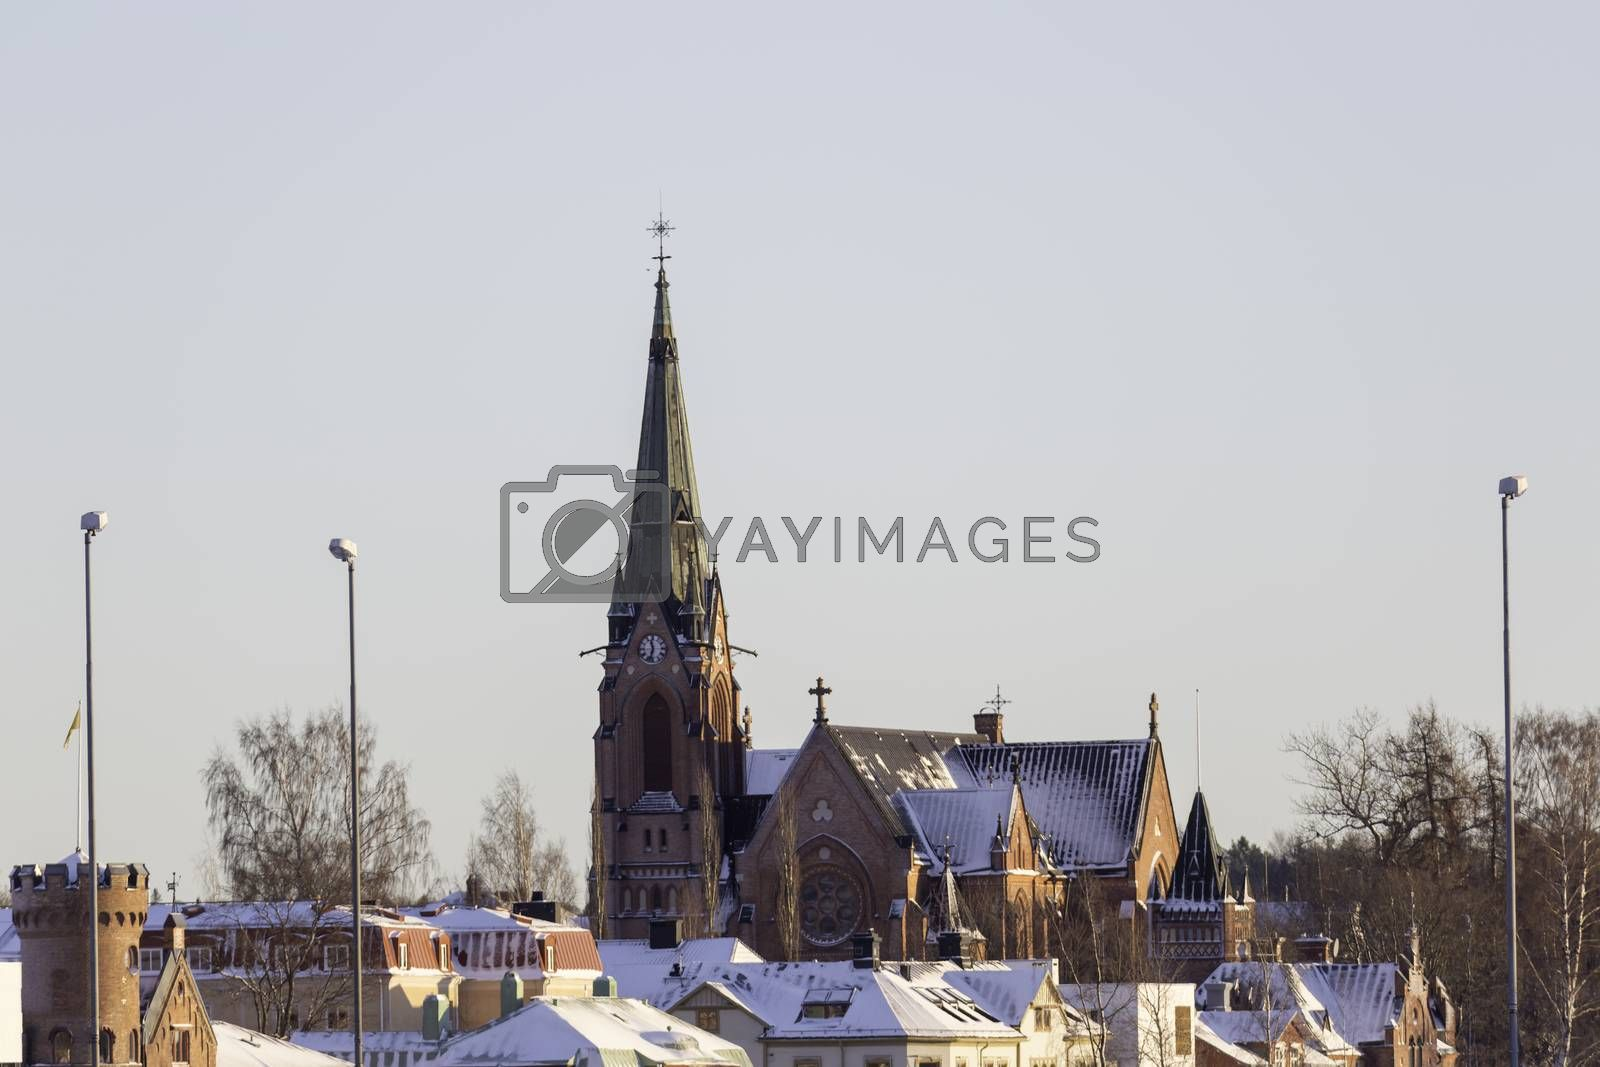 City Church in Umea, Sweden in winter with snow.